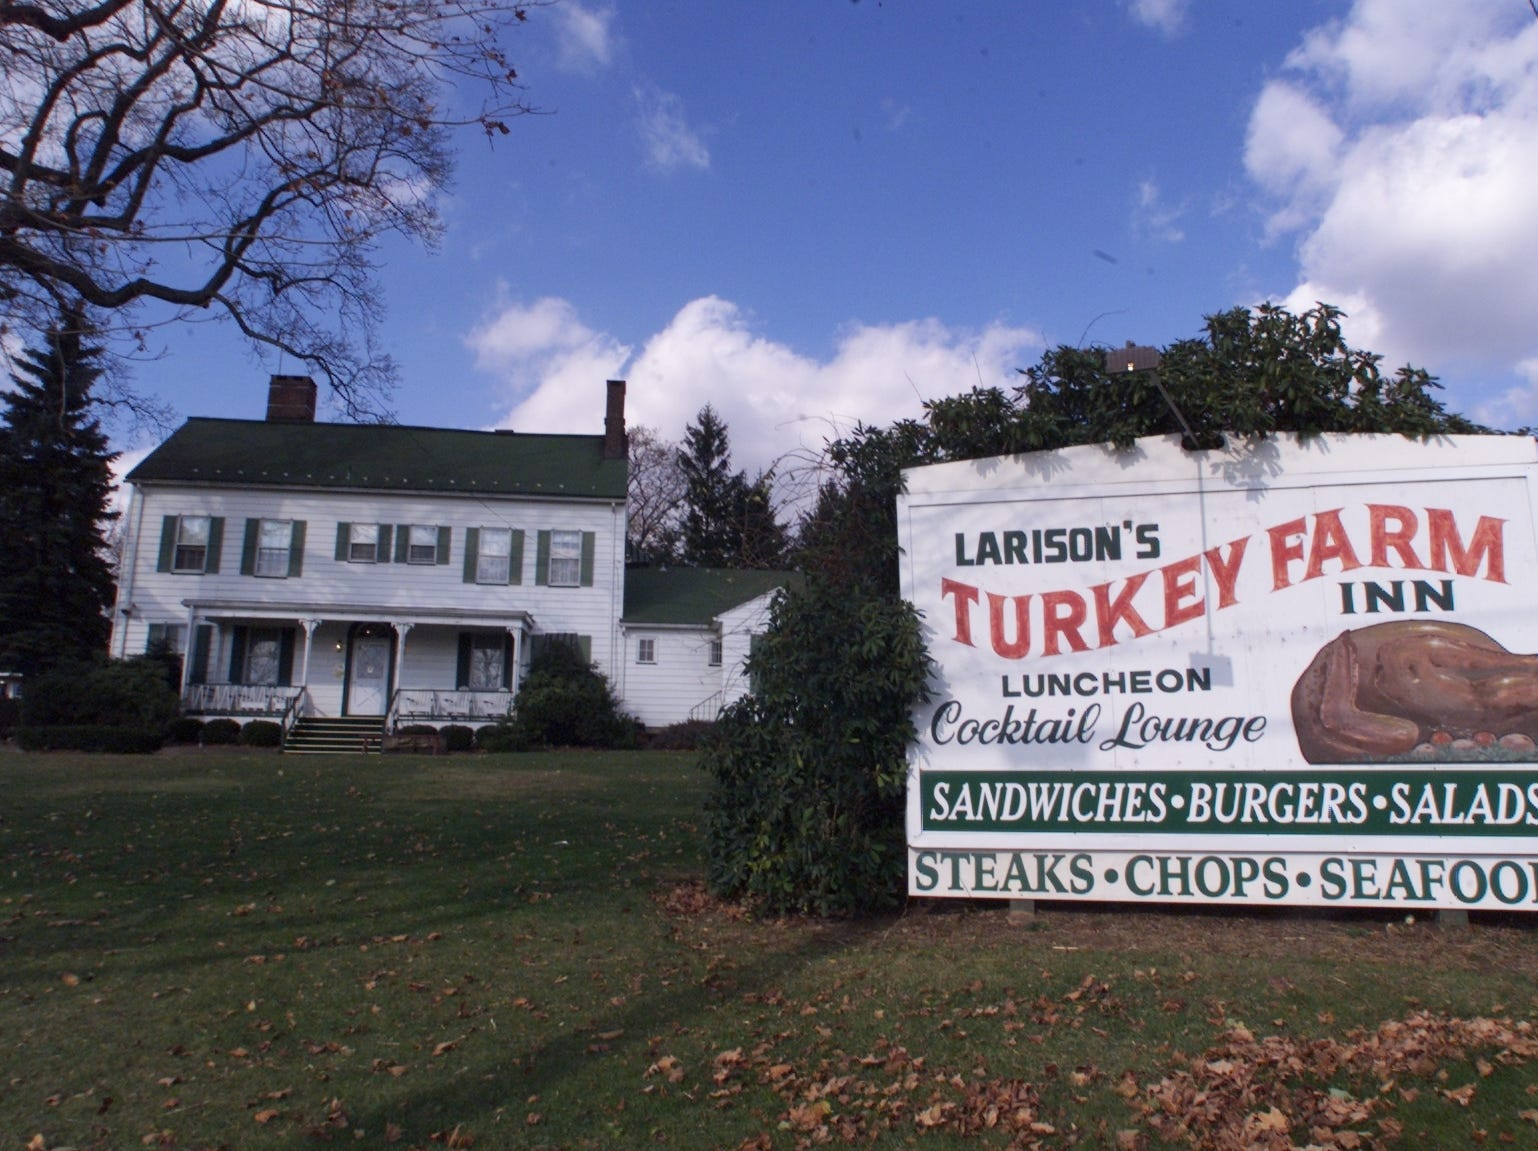 Developers are eyeing Chester's historic Larson's Turkey Farm property for development. The 19th century farm complex for generations was occupied by a restaurant serving family-style meals.